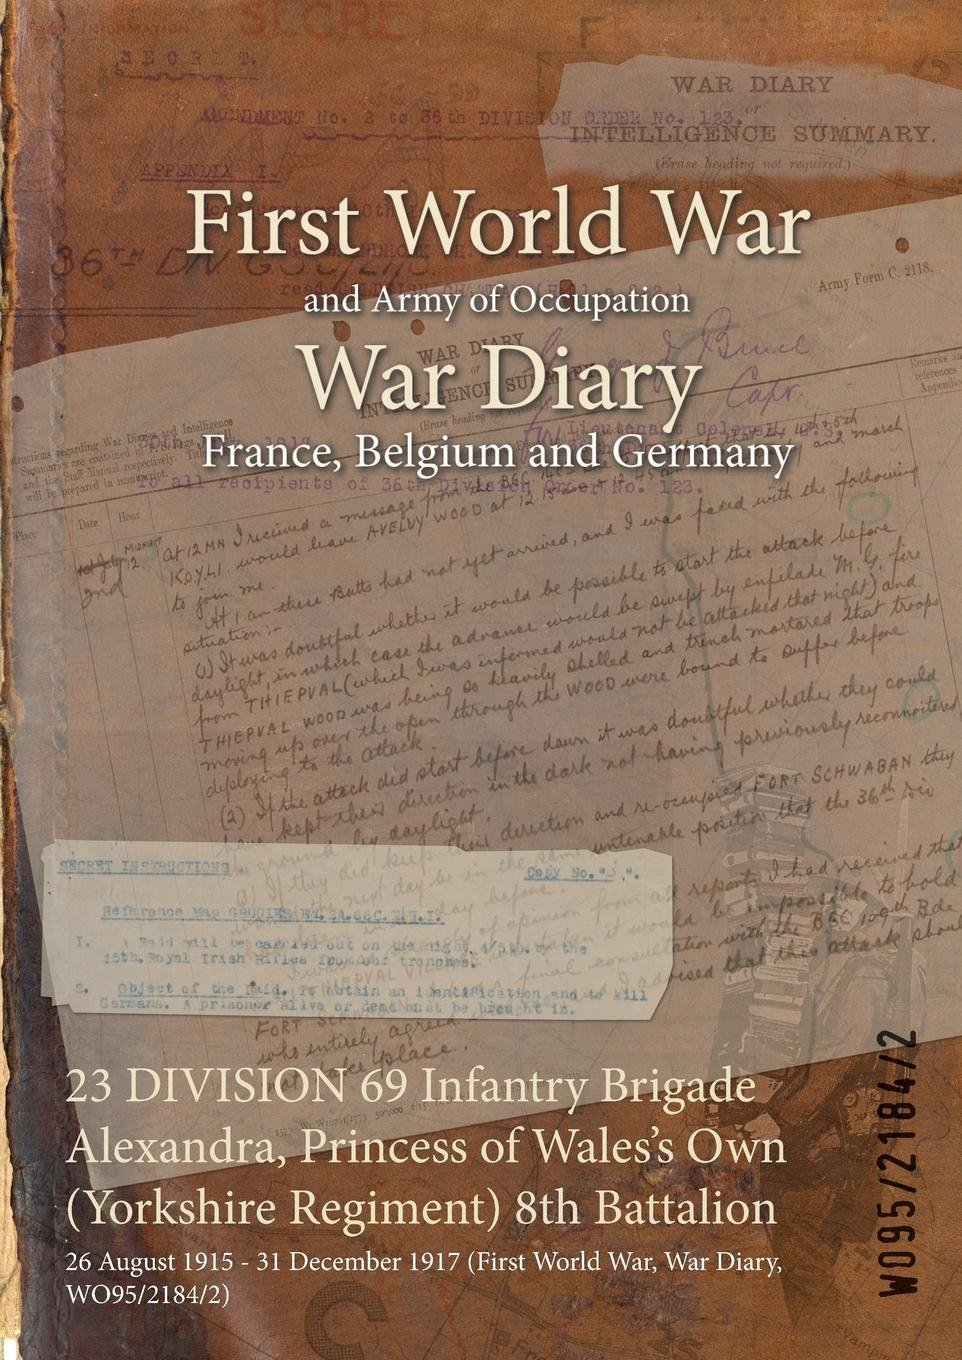 23 Division 69 Infantry Brigade Alexandra, Princess of Wales's Own (Yorkshire Regiment) 8th Battalion: 26 August 1915 - 31 December 1917 (First World War, War Diary, Wo95/2184/2) ebook